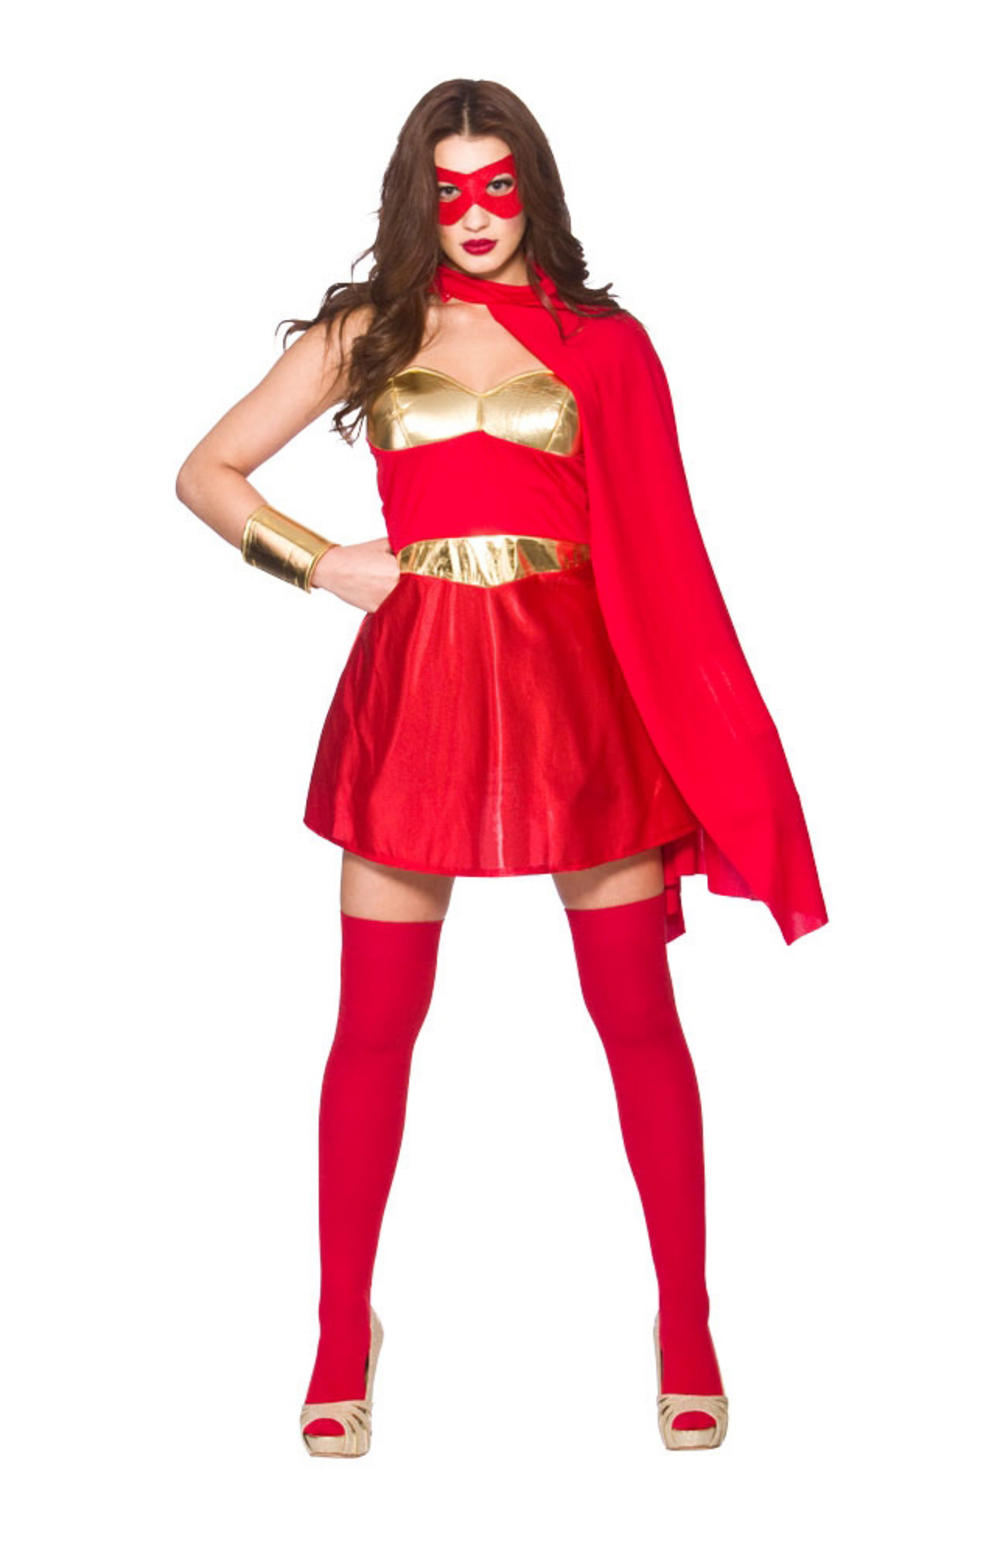 Red Hot Superhero Costume